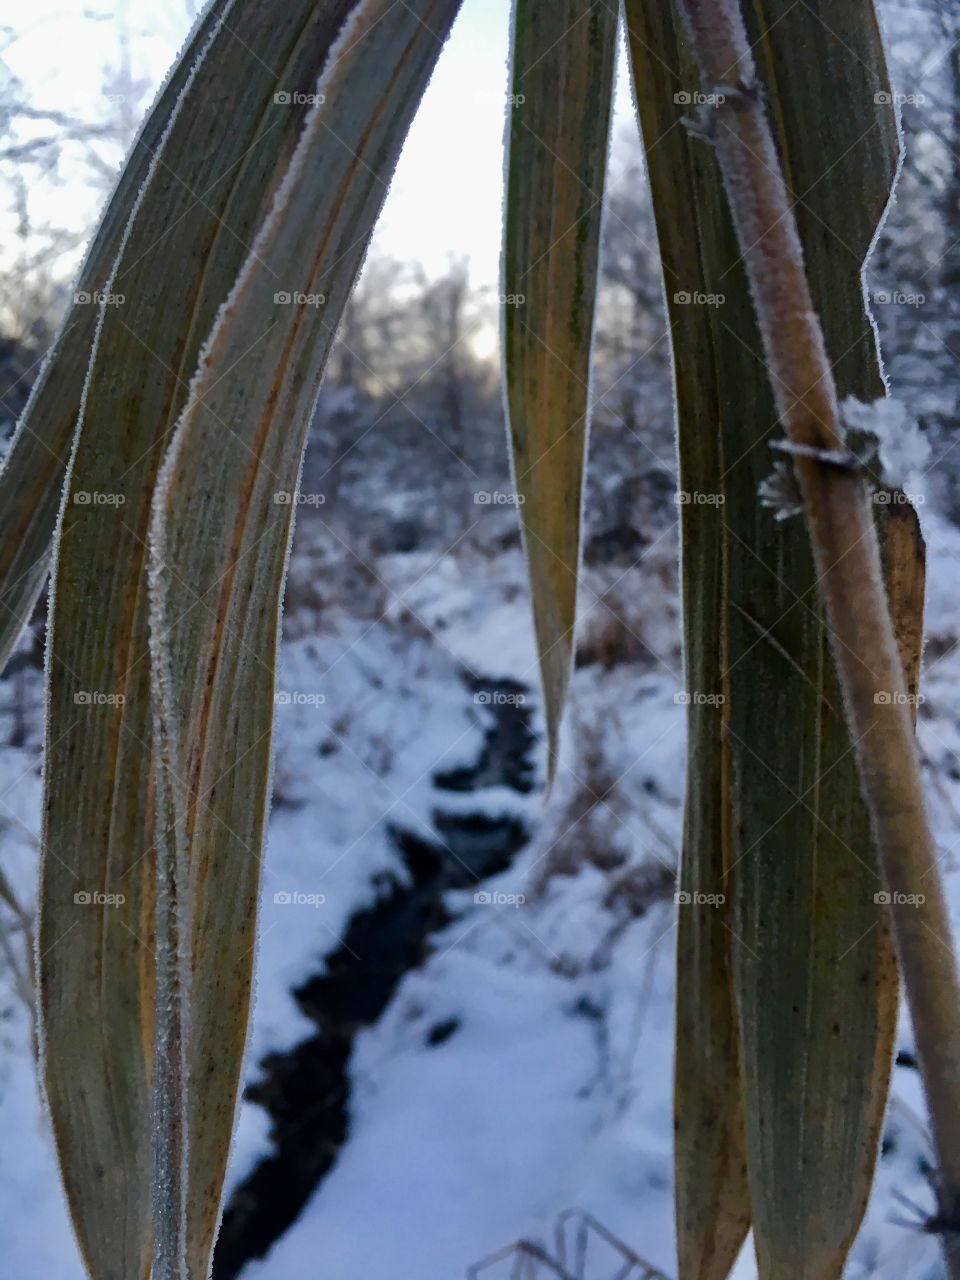 Wilted cane leaves droop in the snow covered forest